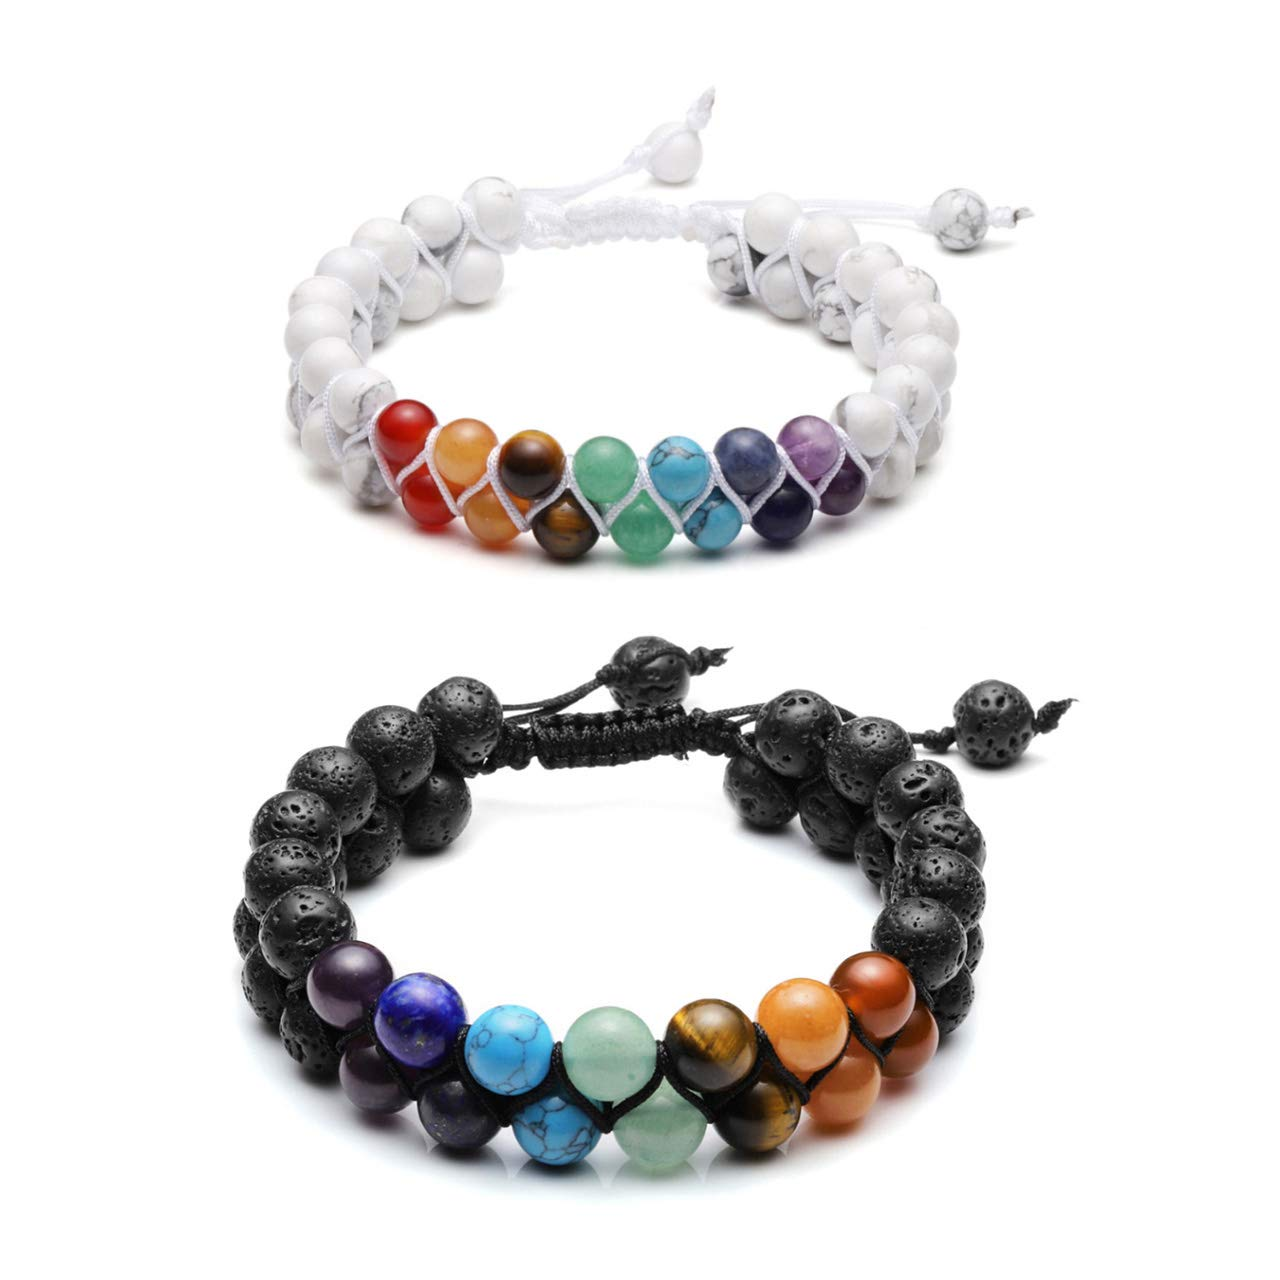 Top Plaza 7 Chakra Bracelet Natural Lava Rock Stones White Turquoise Beads Bracelets Aromatherapy Essential Oil Diffuser Bracelet Stress Relief Anxiety Bracelets for Couples